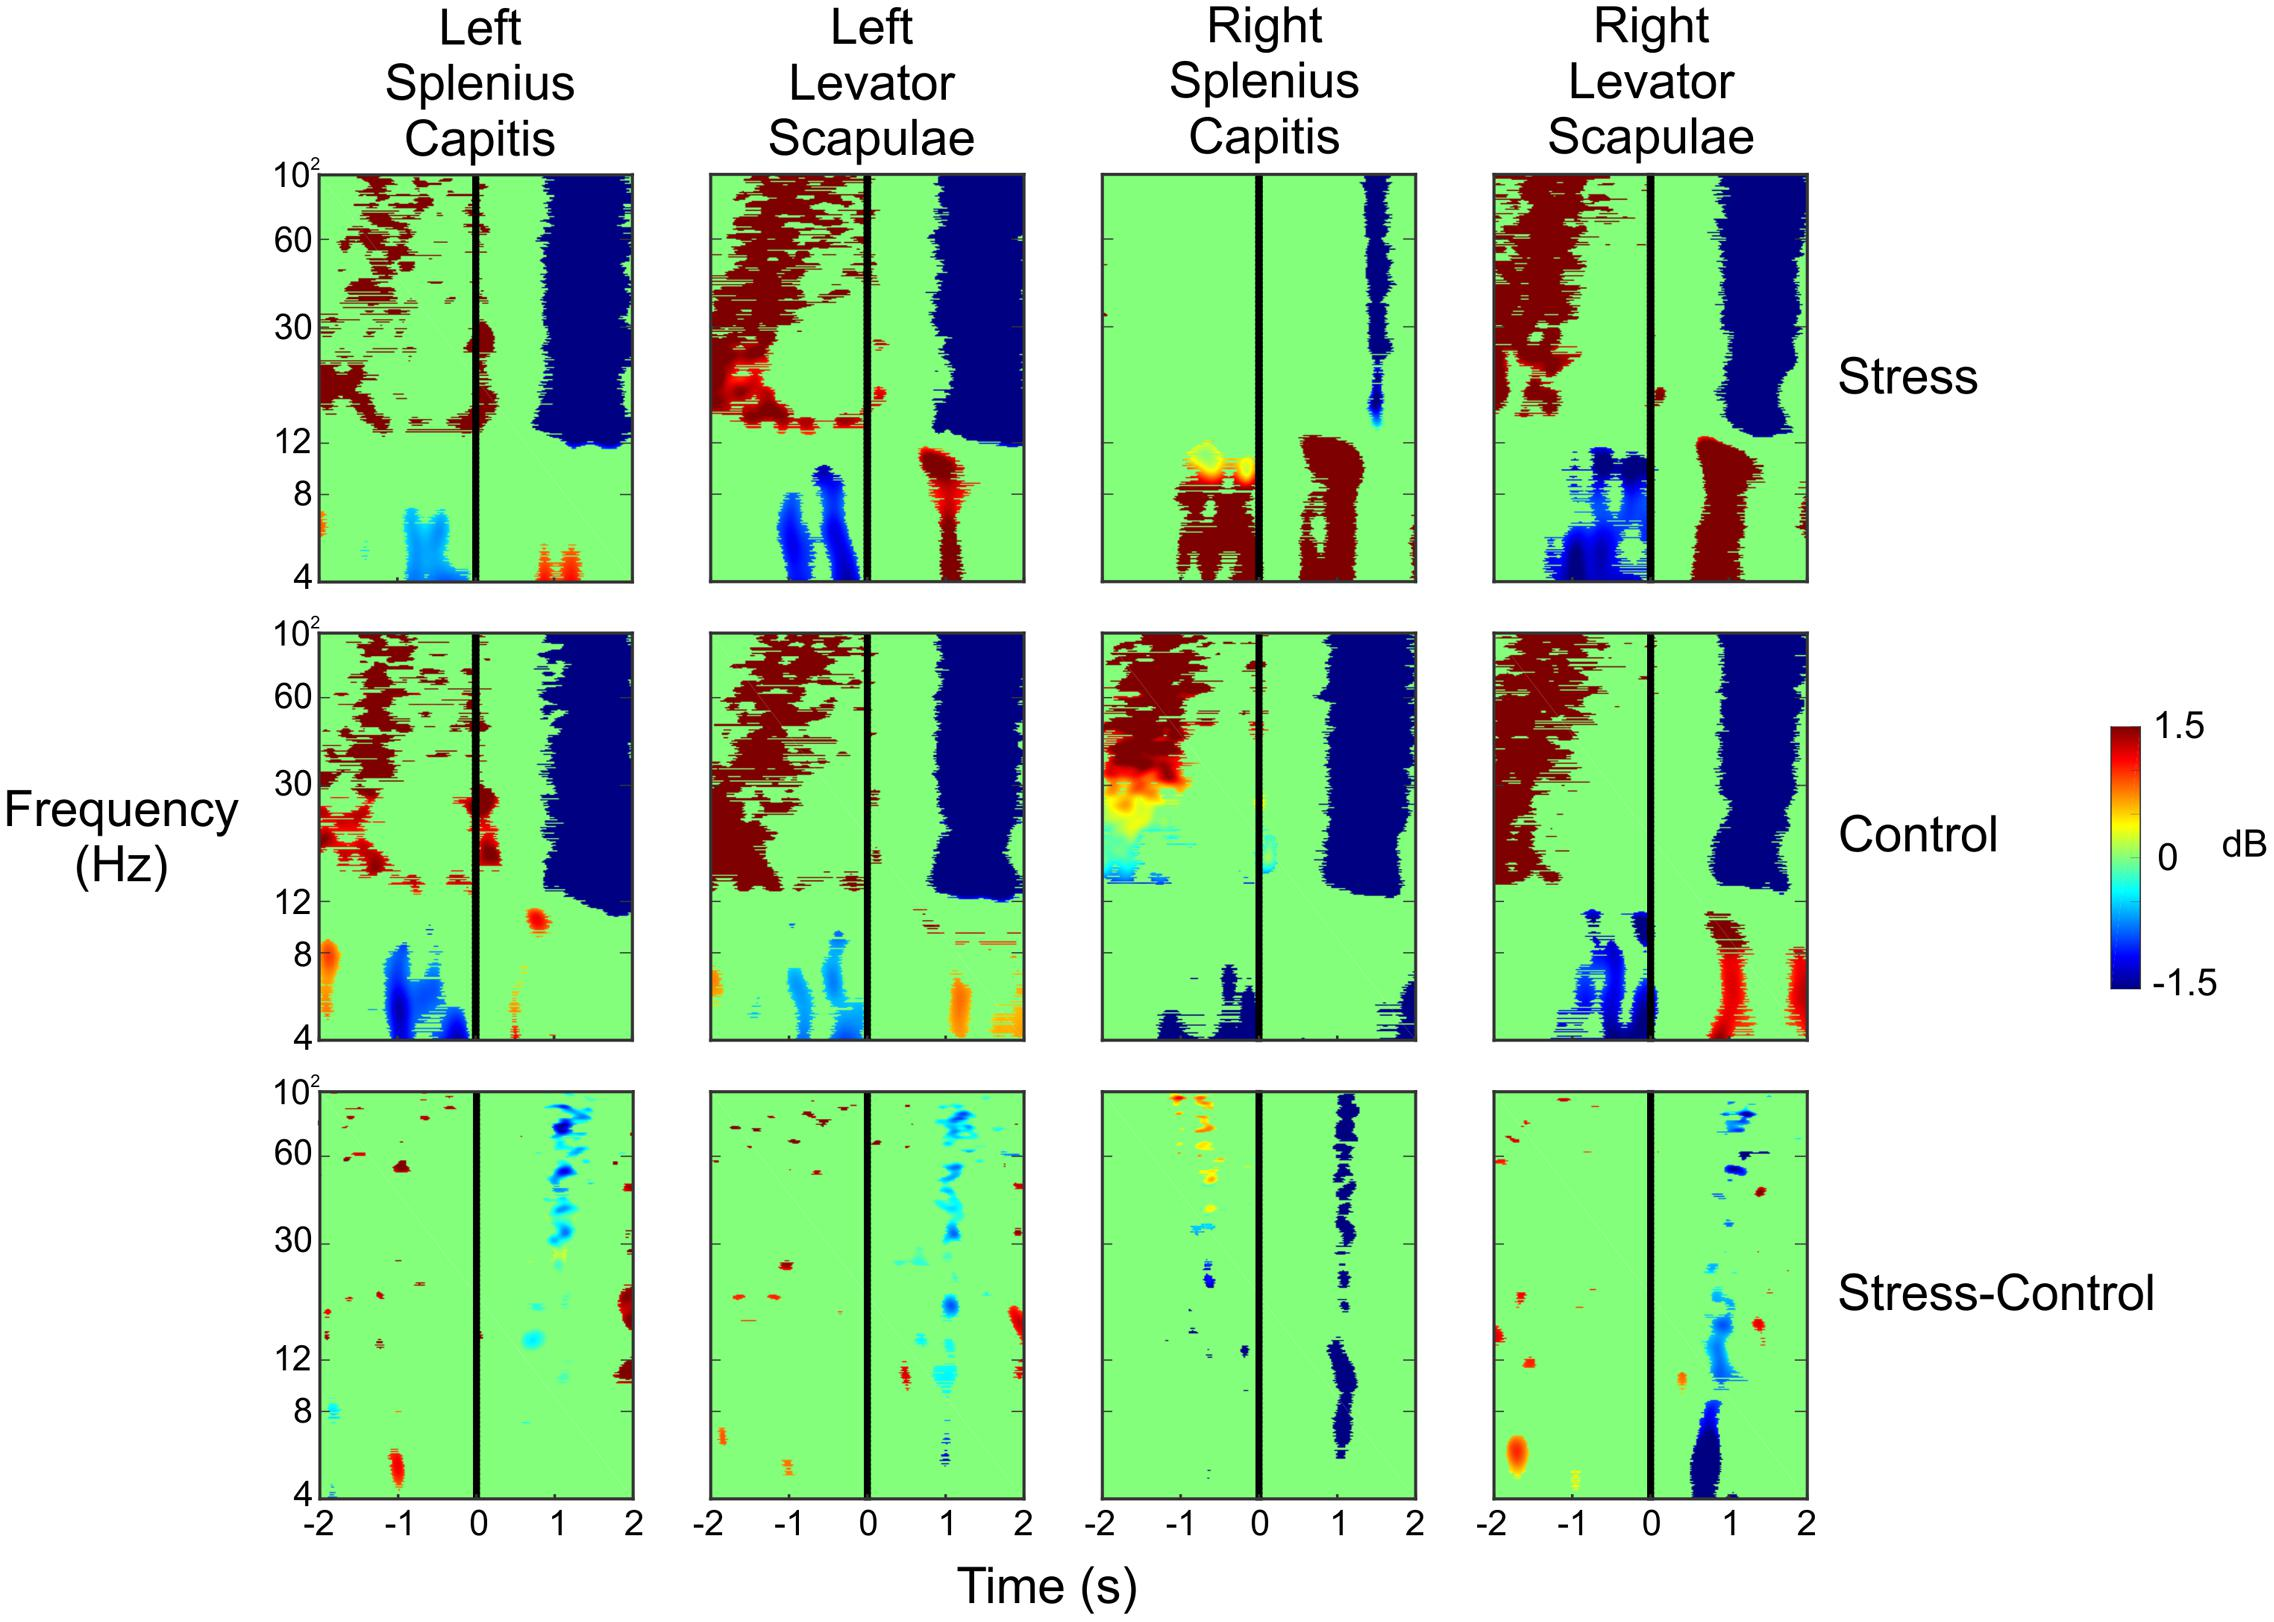 Frontiers | Independent Component Analysis and Source Localization